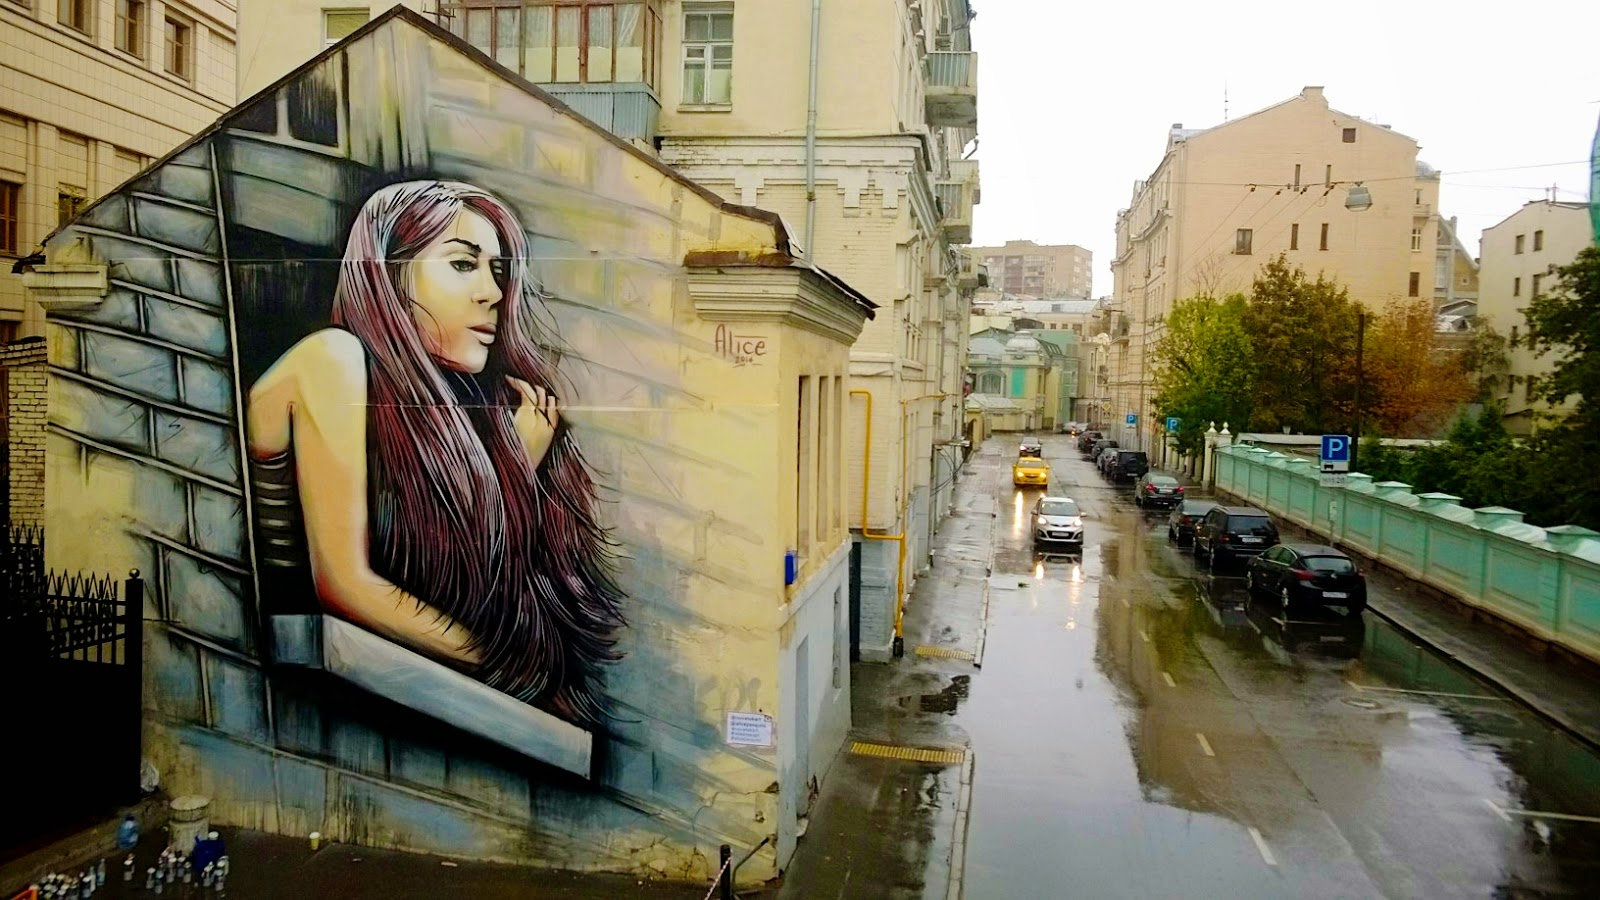 Rome-based Alice spent the last week in Moscow, Russia where she was invited to work herm magic for the MOST street art Festival.